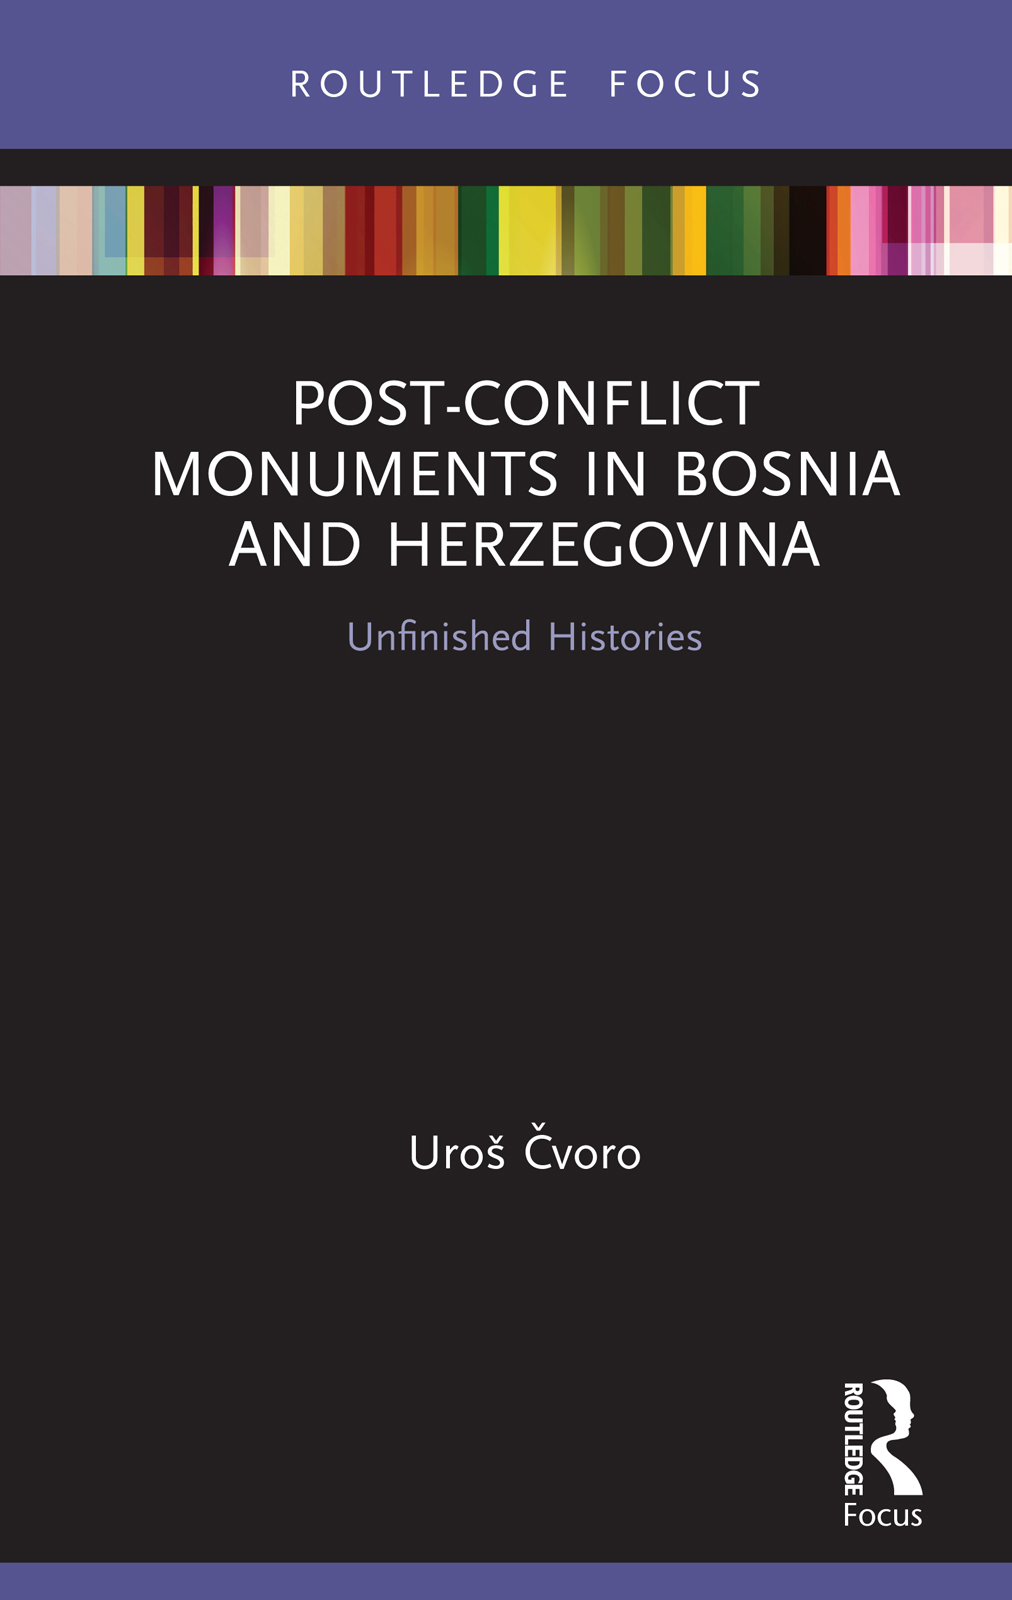 Post-Conflict Monuments in Bosnia and Herzegovina